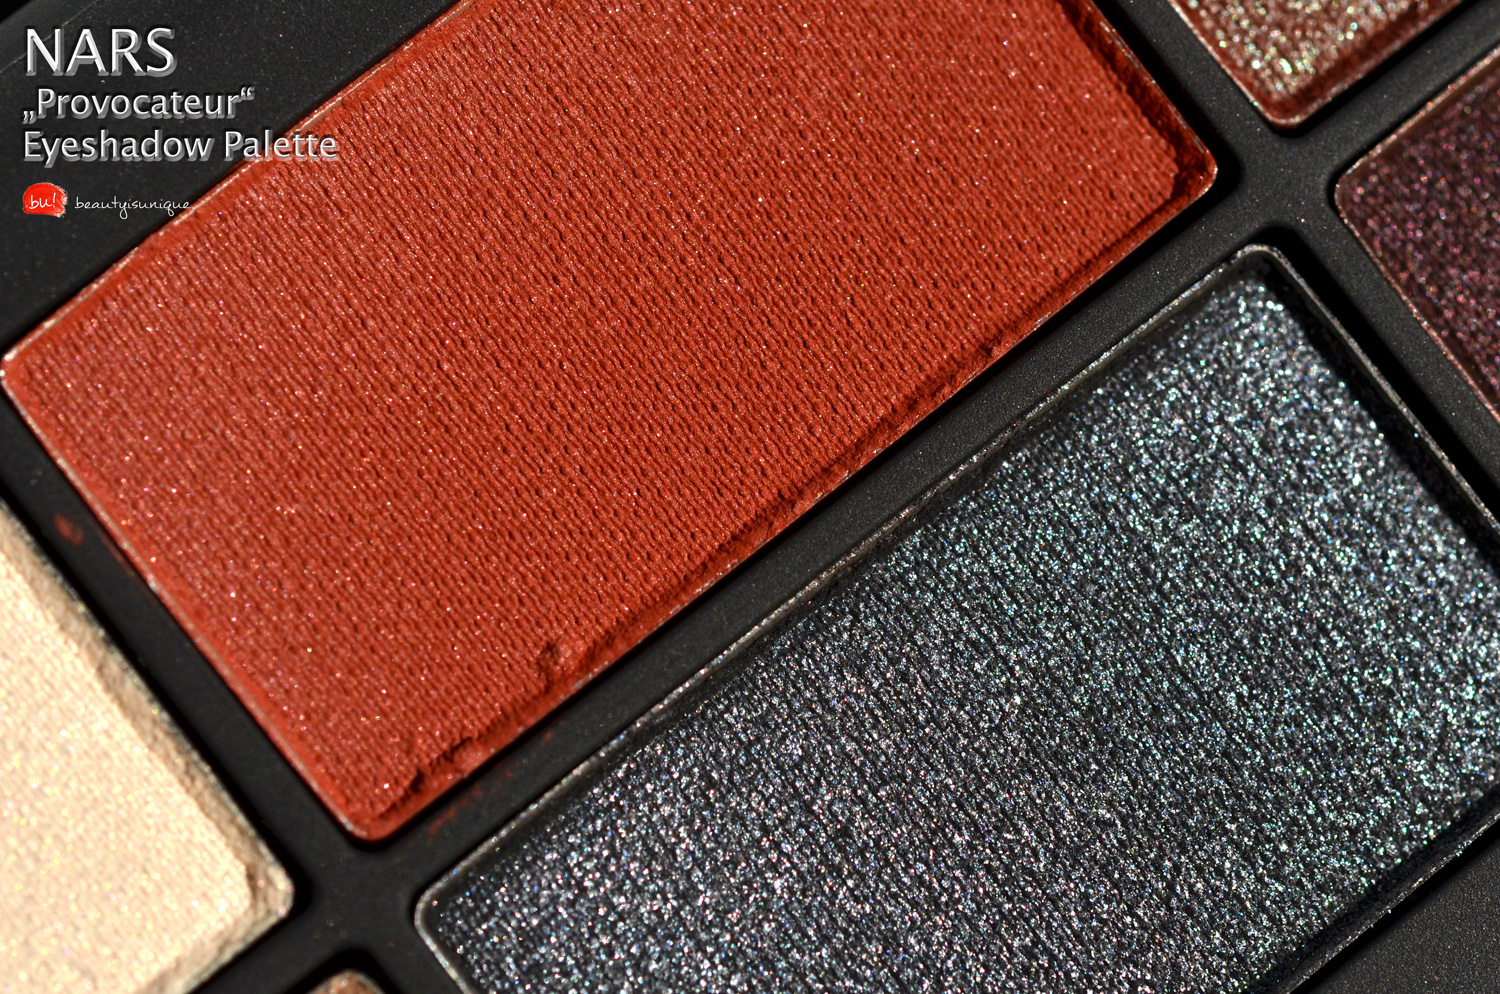 nars-provocateur-eyeshadow-palete-preview